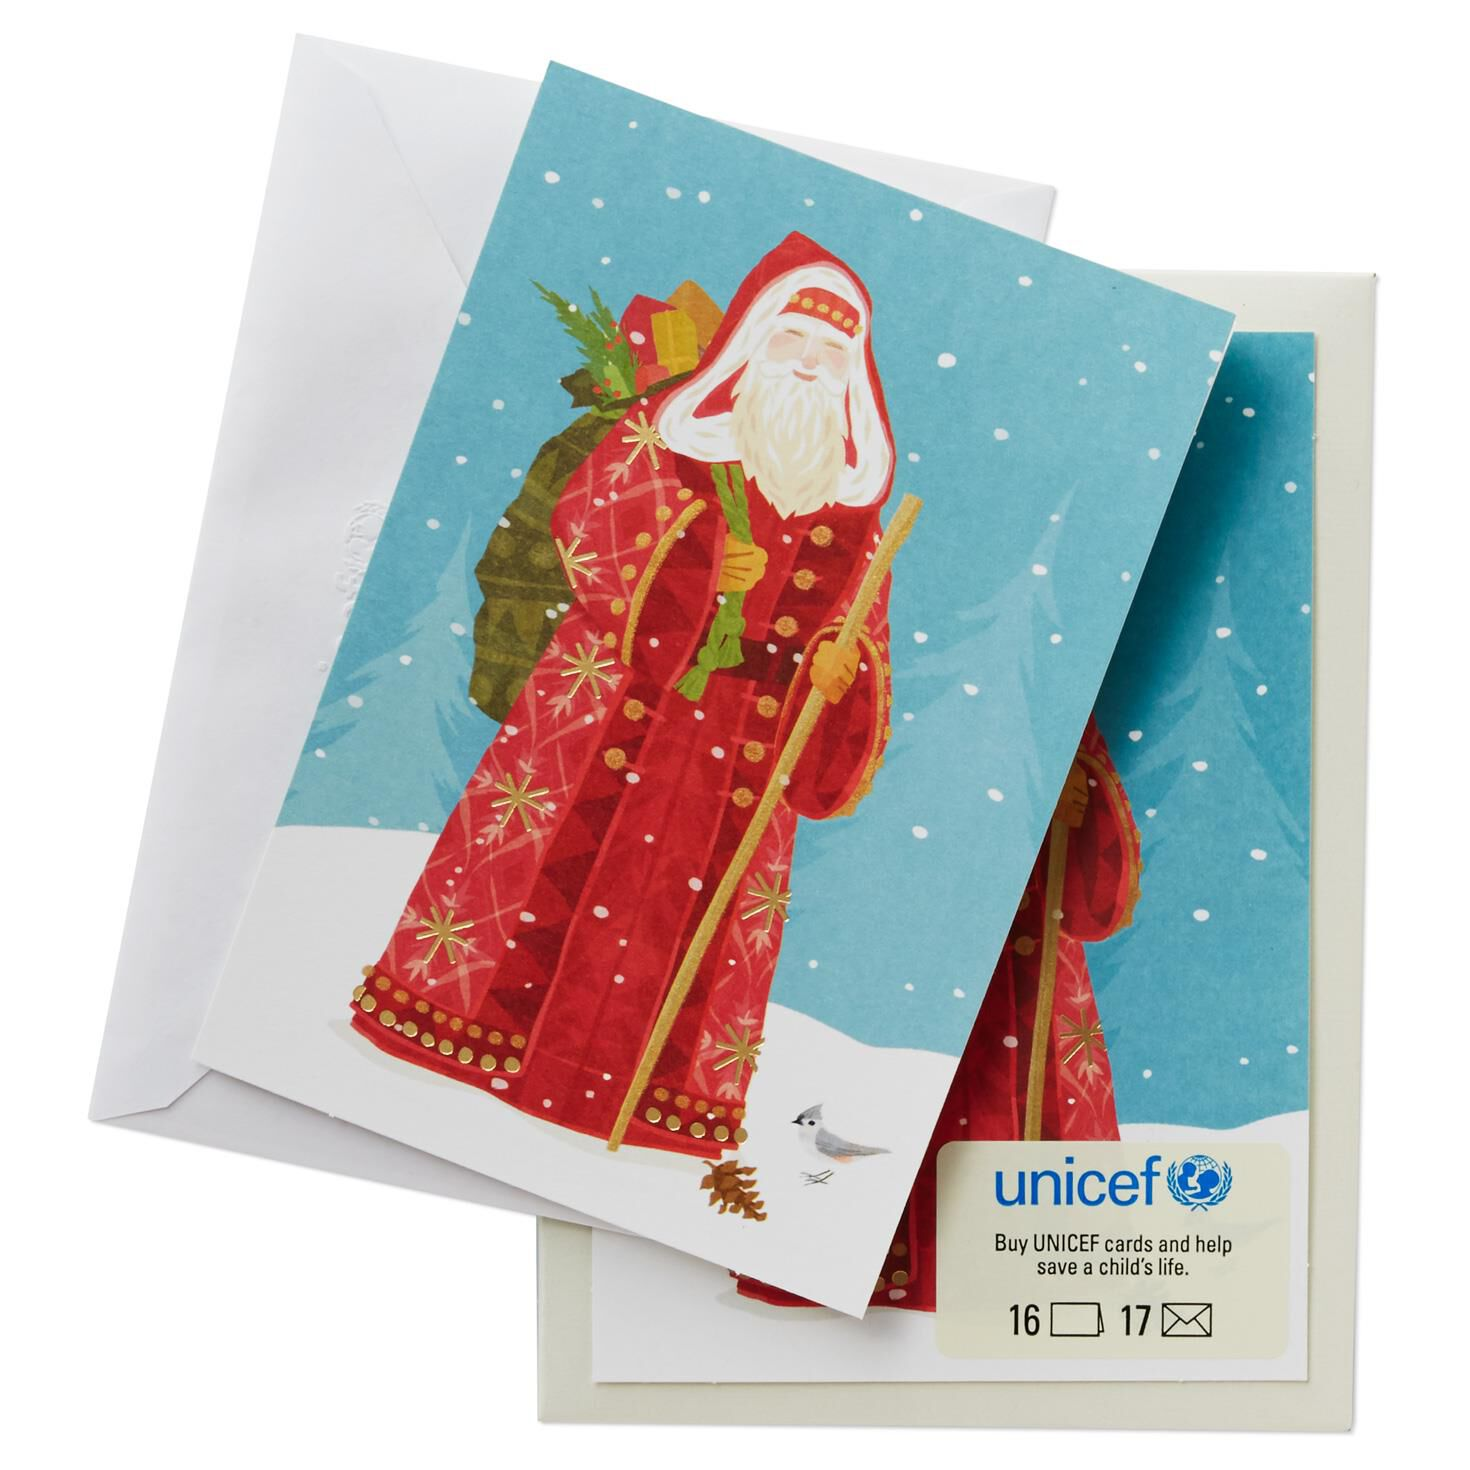 jovoto andy warhol christmas happy new cards unicef schweiz unicef holiday cards sample - Unicef Holiday Cards